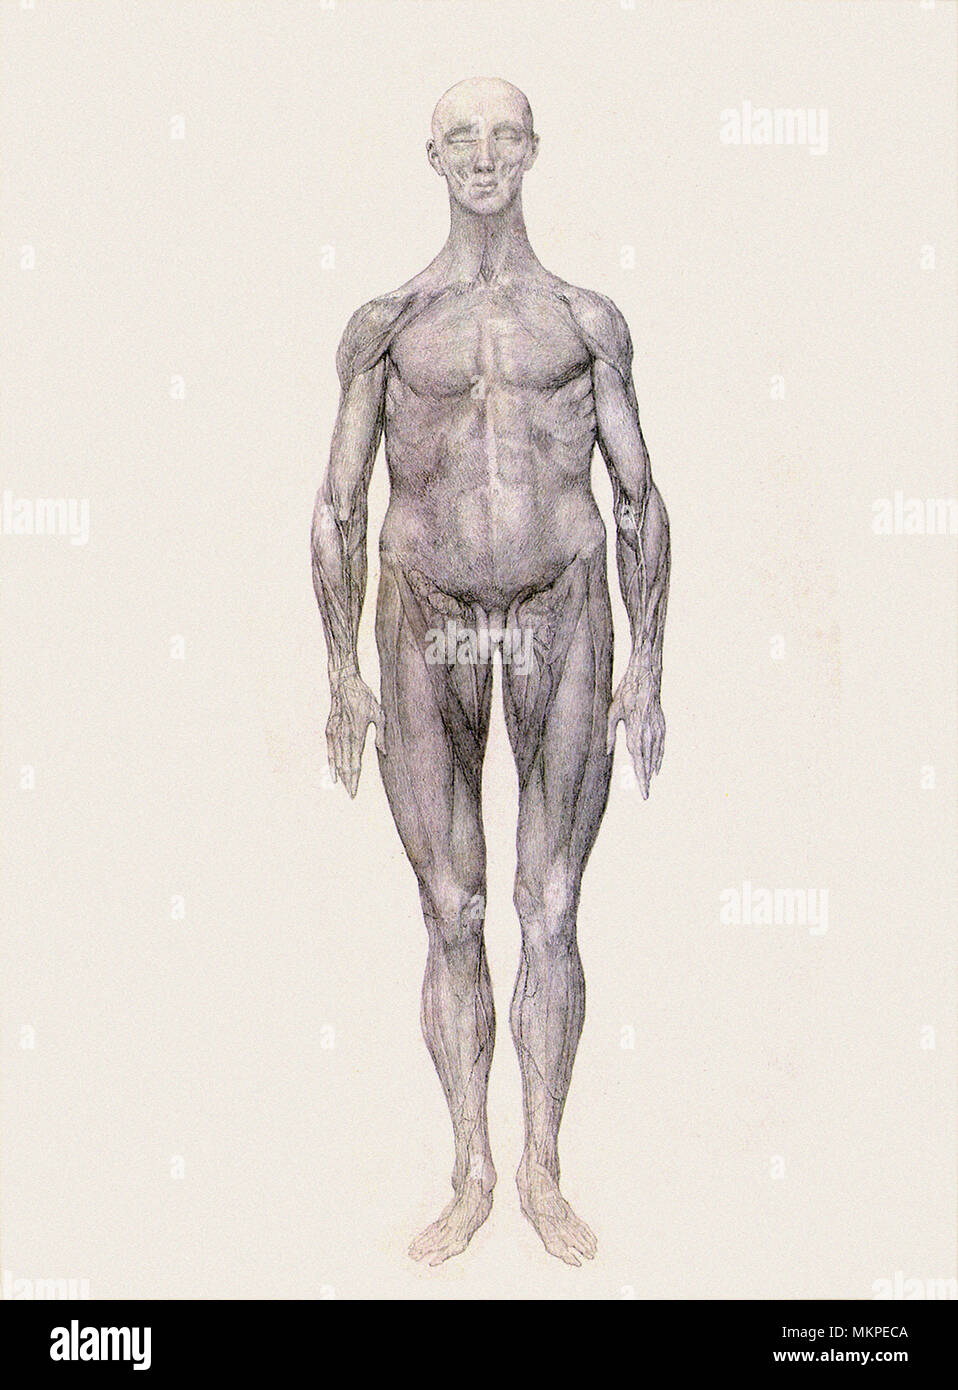 Human Being, Anterior View - Stock Image